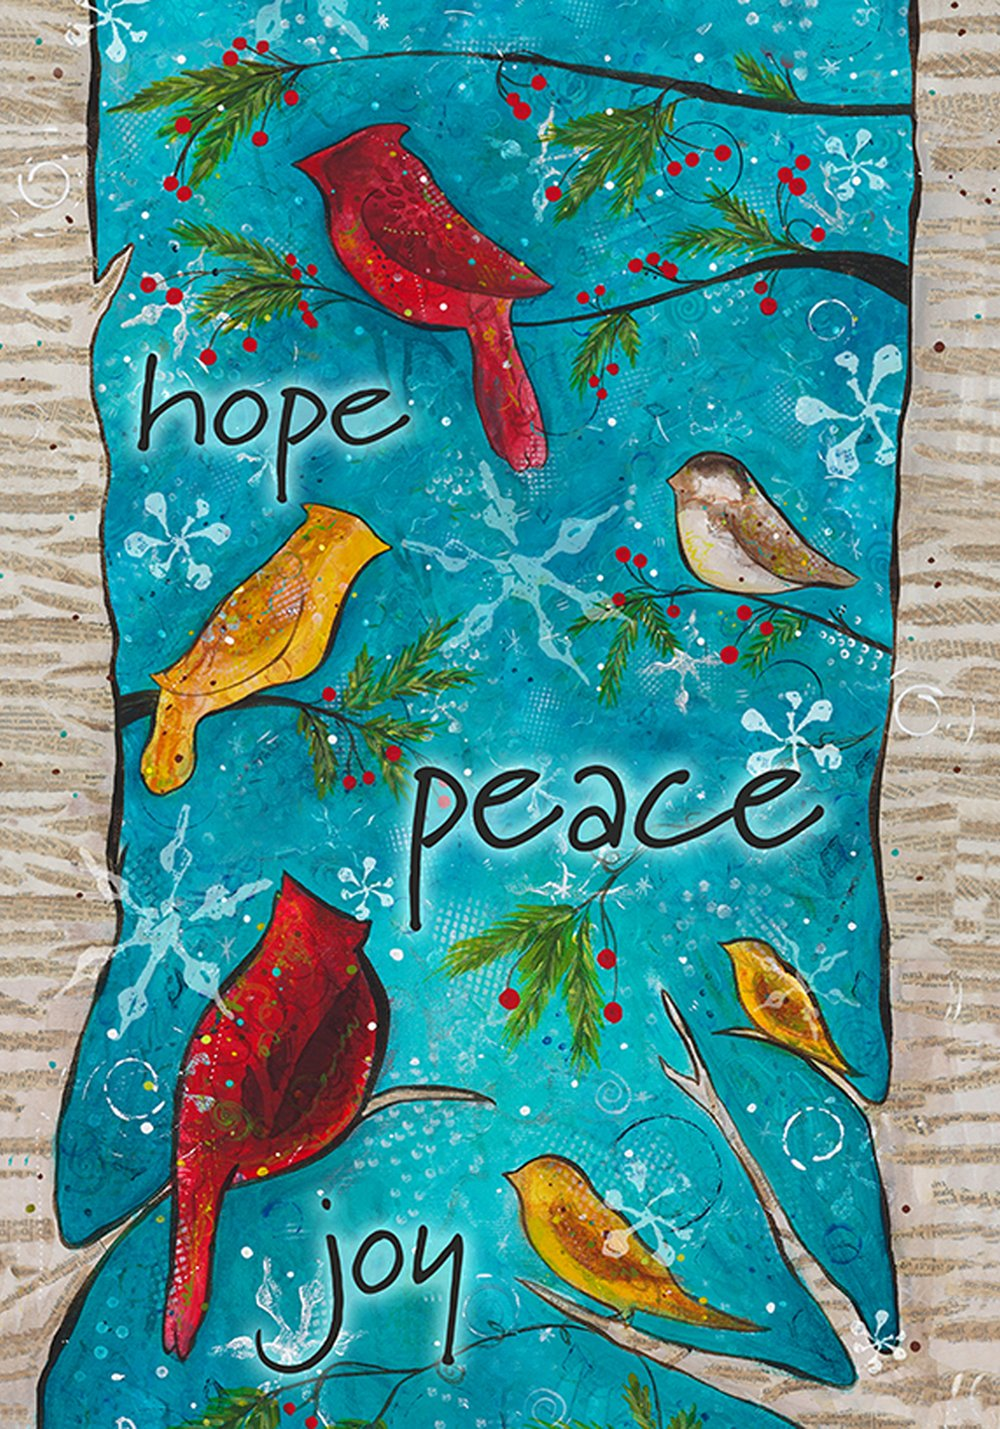 Toland Home Garden Peace Birds 12.5 x 18 Inch Decorative Winter Holiday Bird Joy Hope Garden Flag